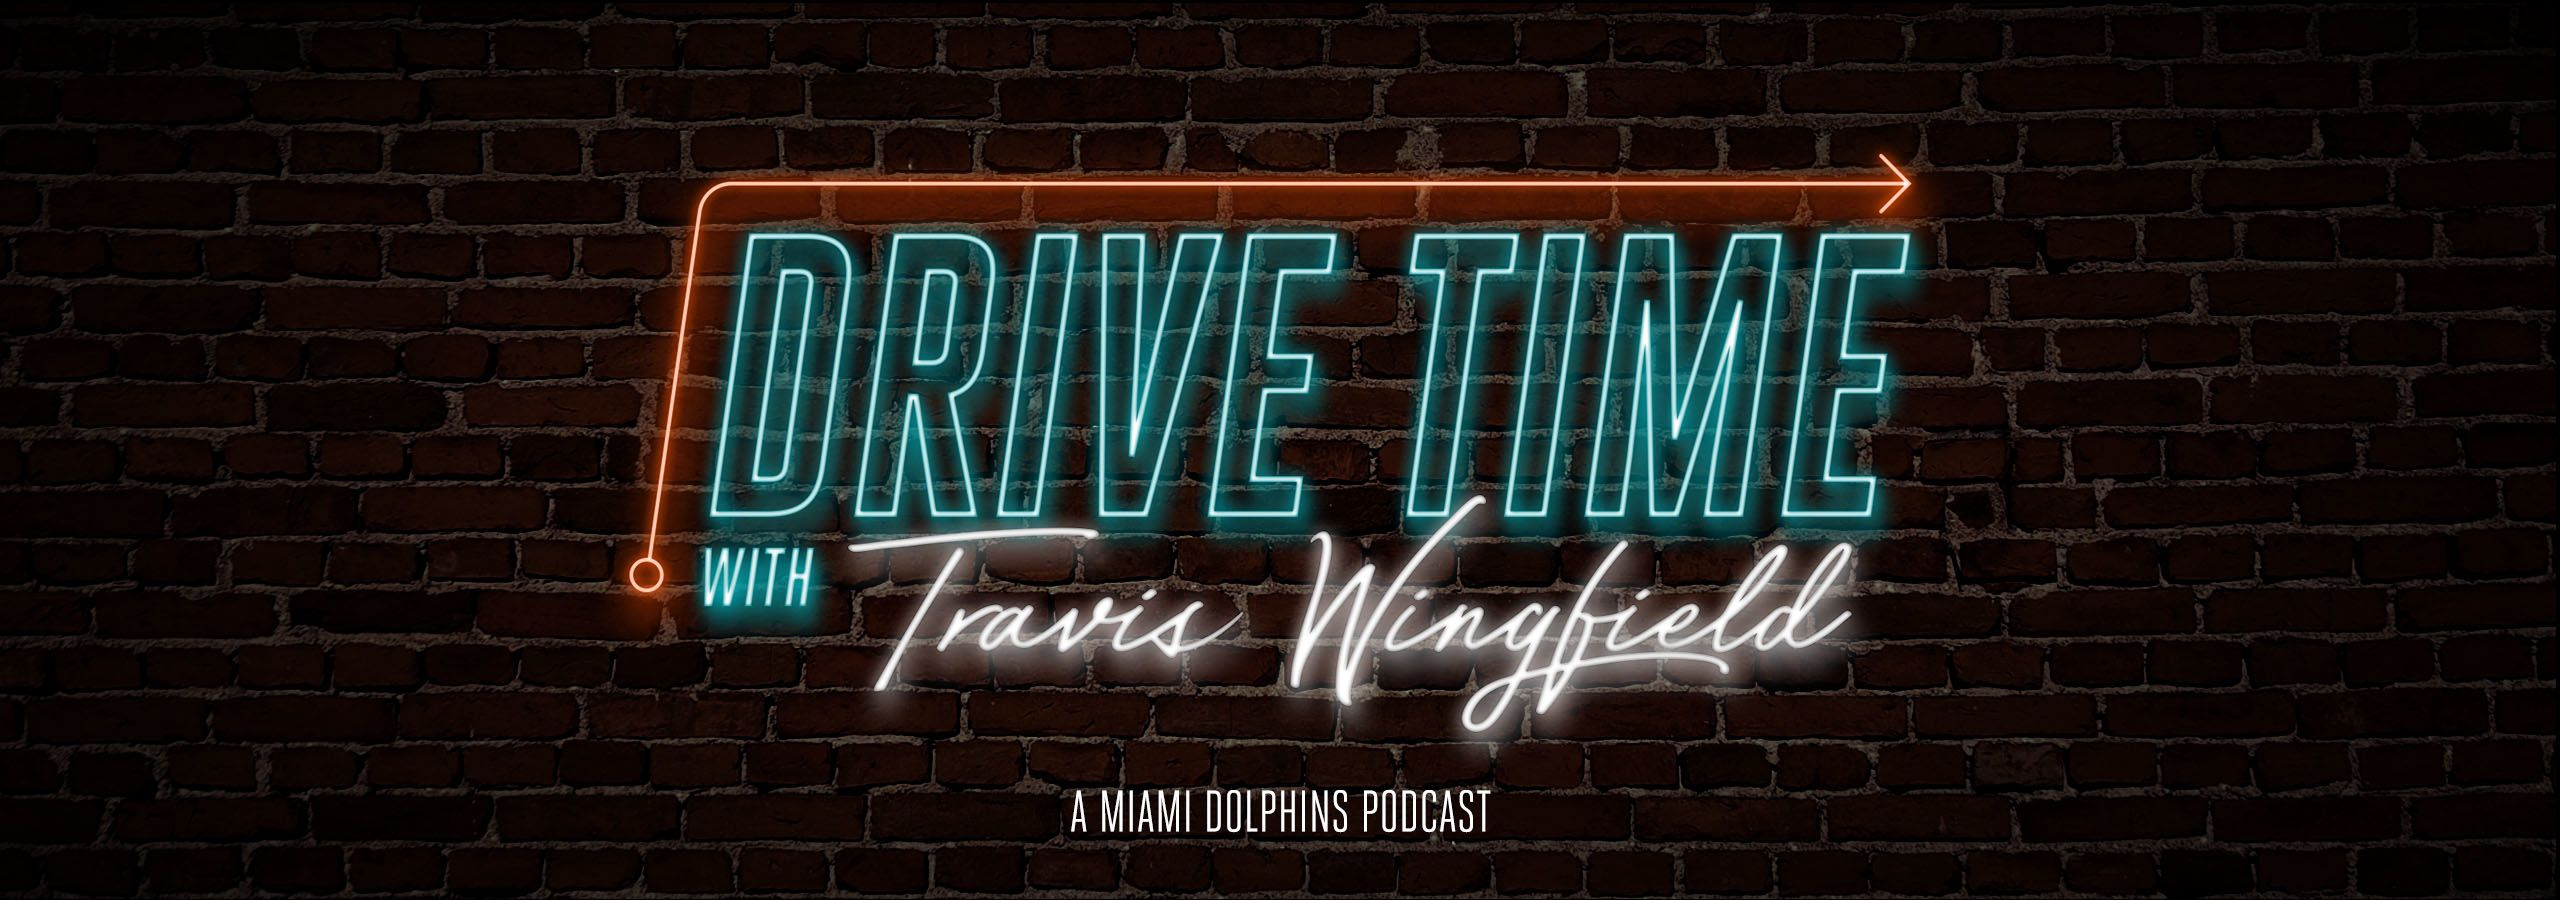 Header: Drive Time with Travis Wingfield | A Miami Dolphins Podcast